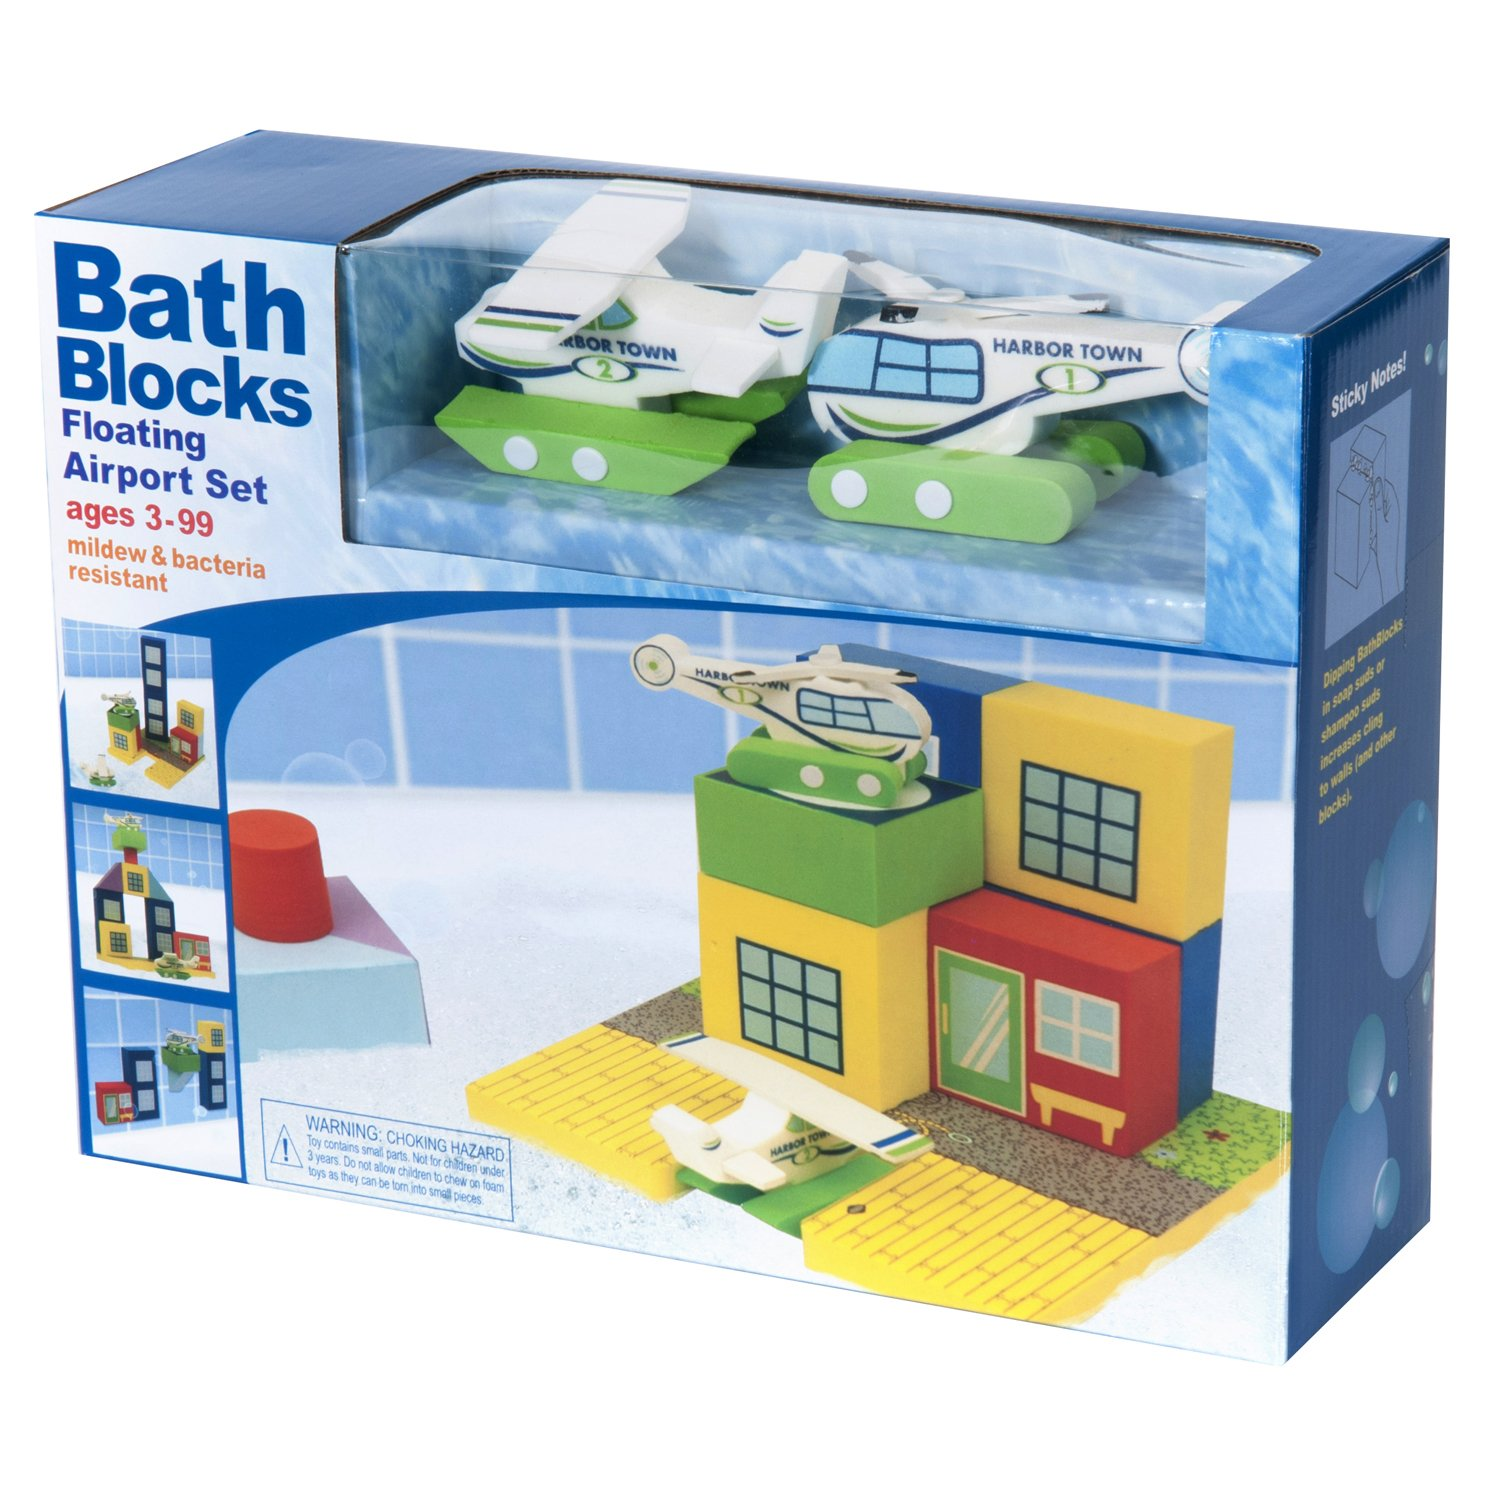 BathBlocks Floating Airport Set in Gift Box by Just Think Toys